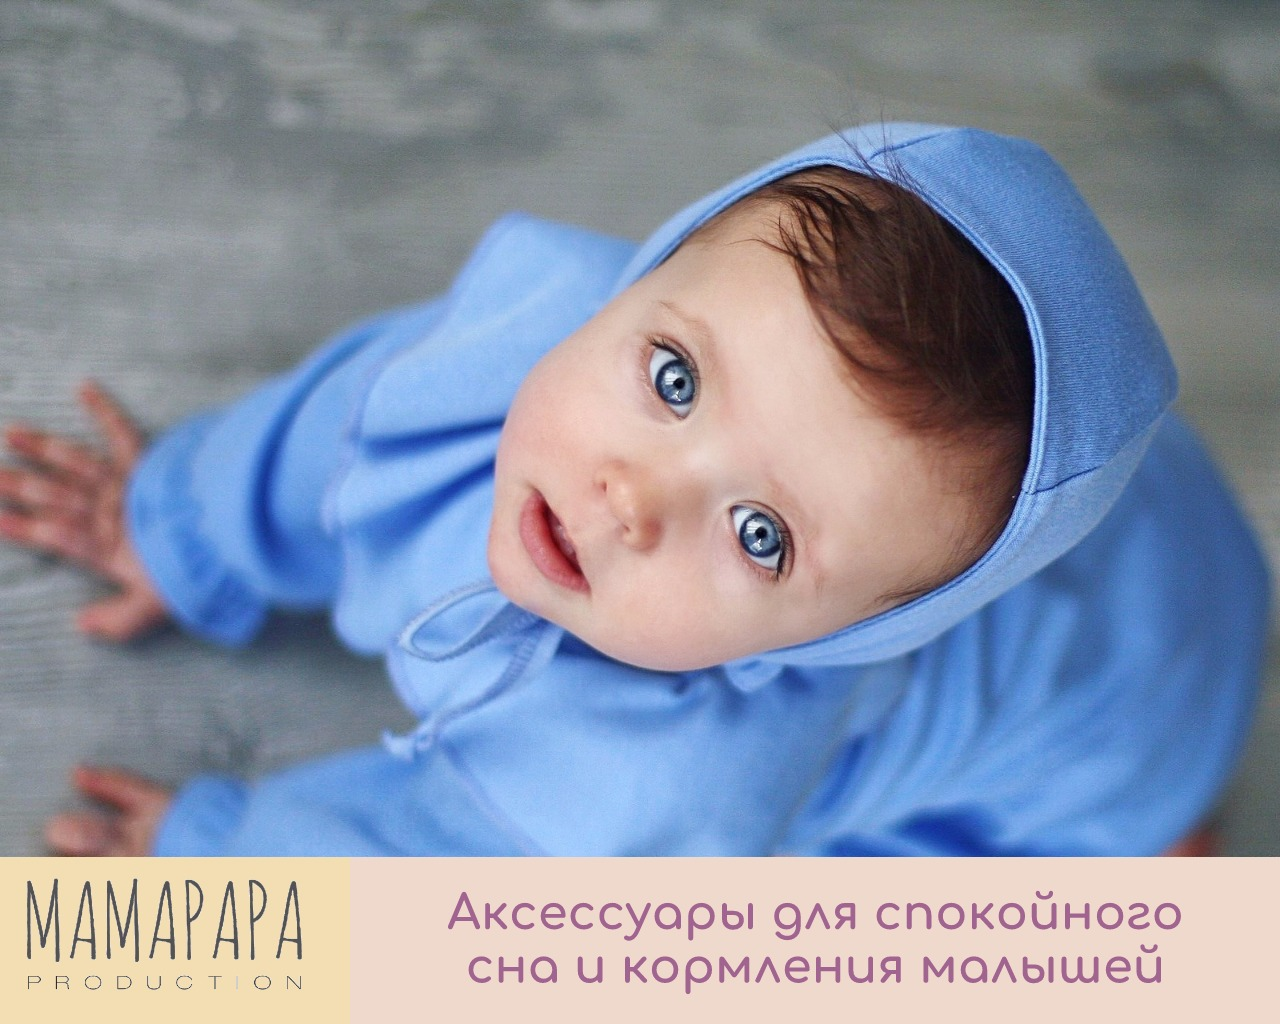 www.mamapapaproduction.ru